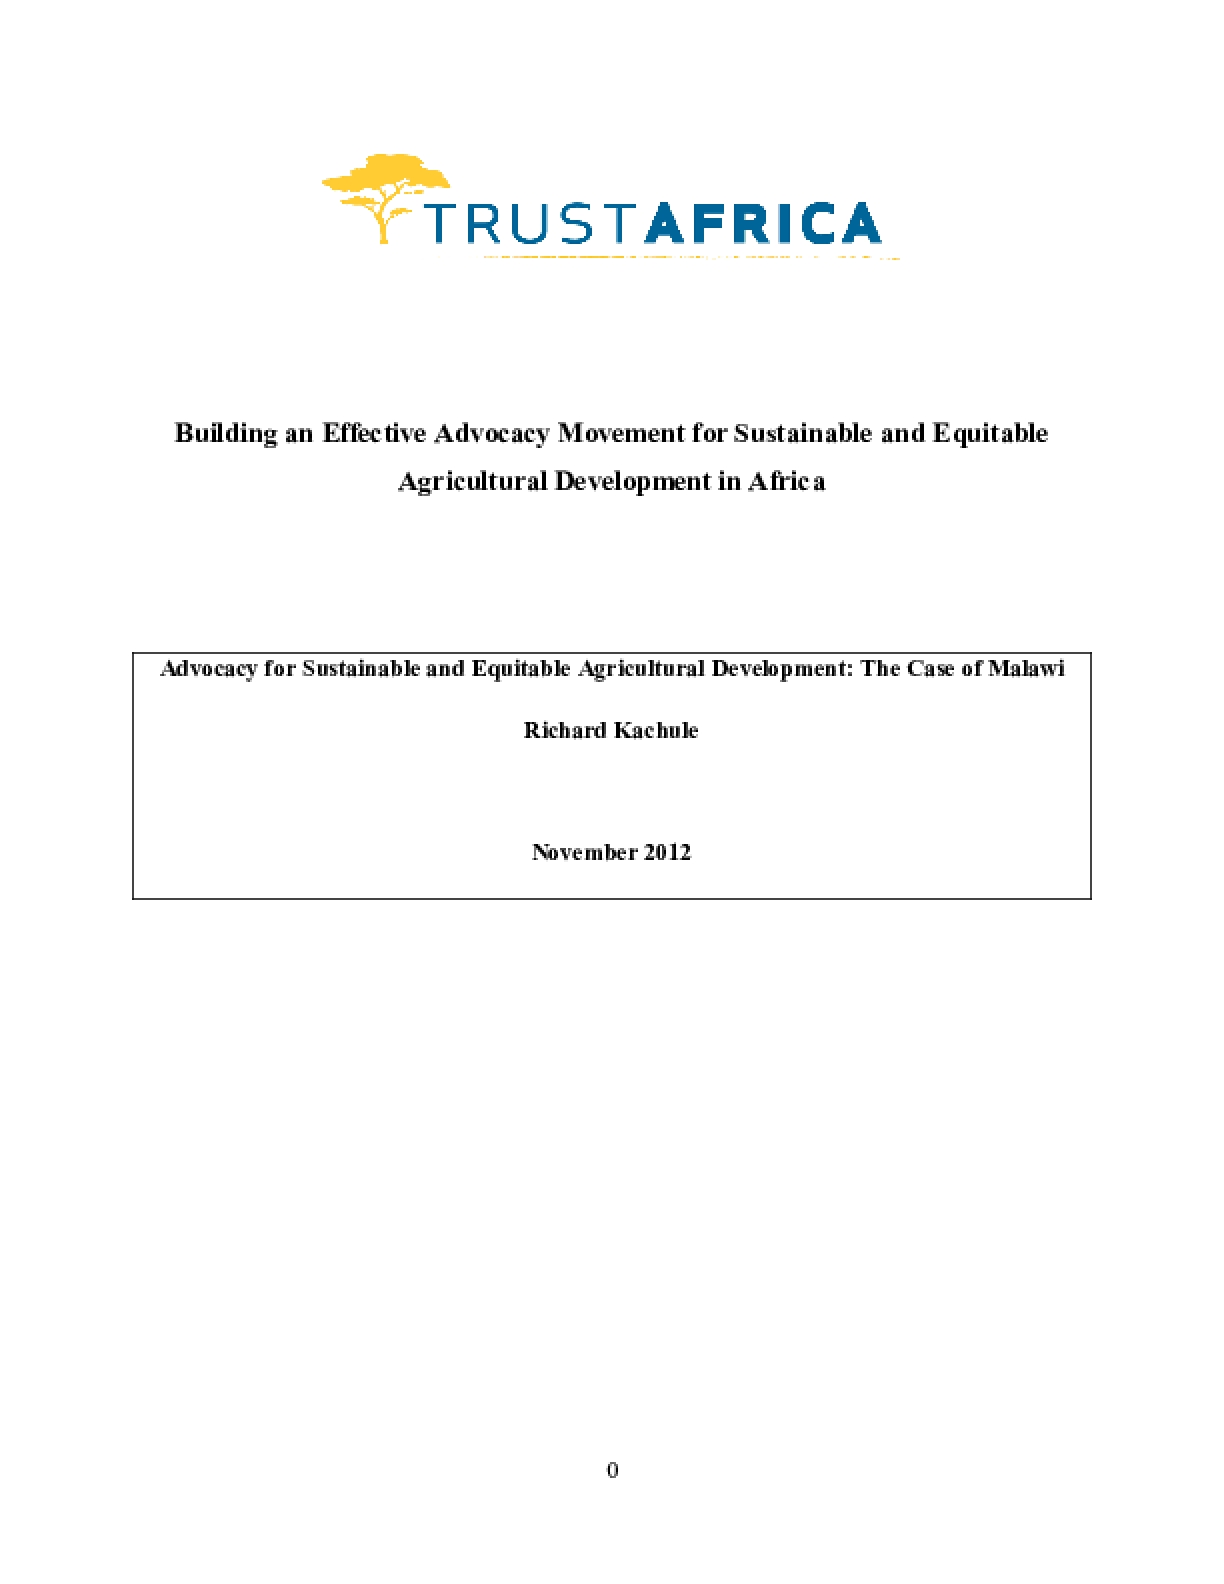 Building an Effective Advocacy Movement for Sustainable and Equitable Agricultural Development in Africa: Advocacy for Sustainable and Equitable Agricultural Development: The Case of Malawi